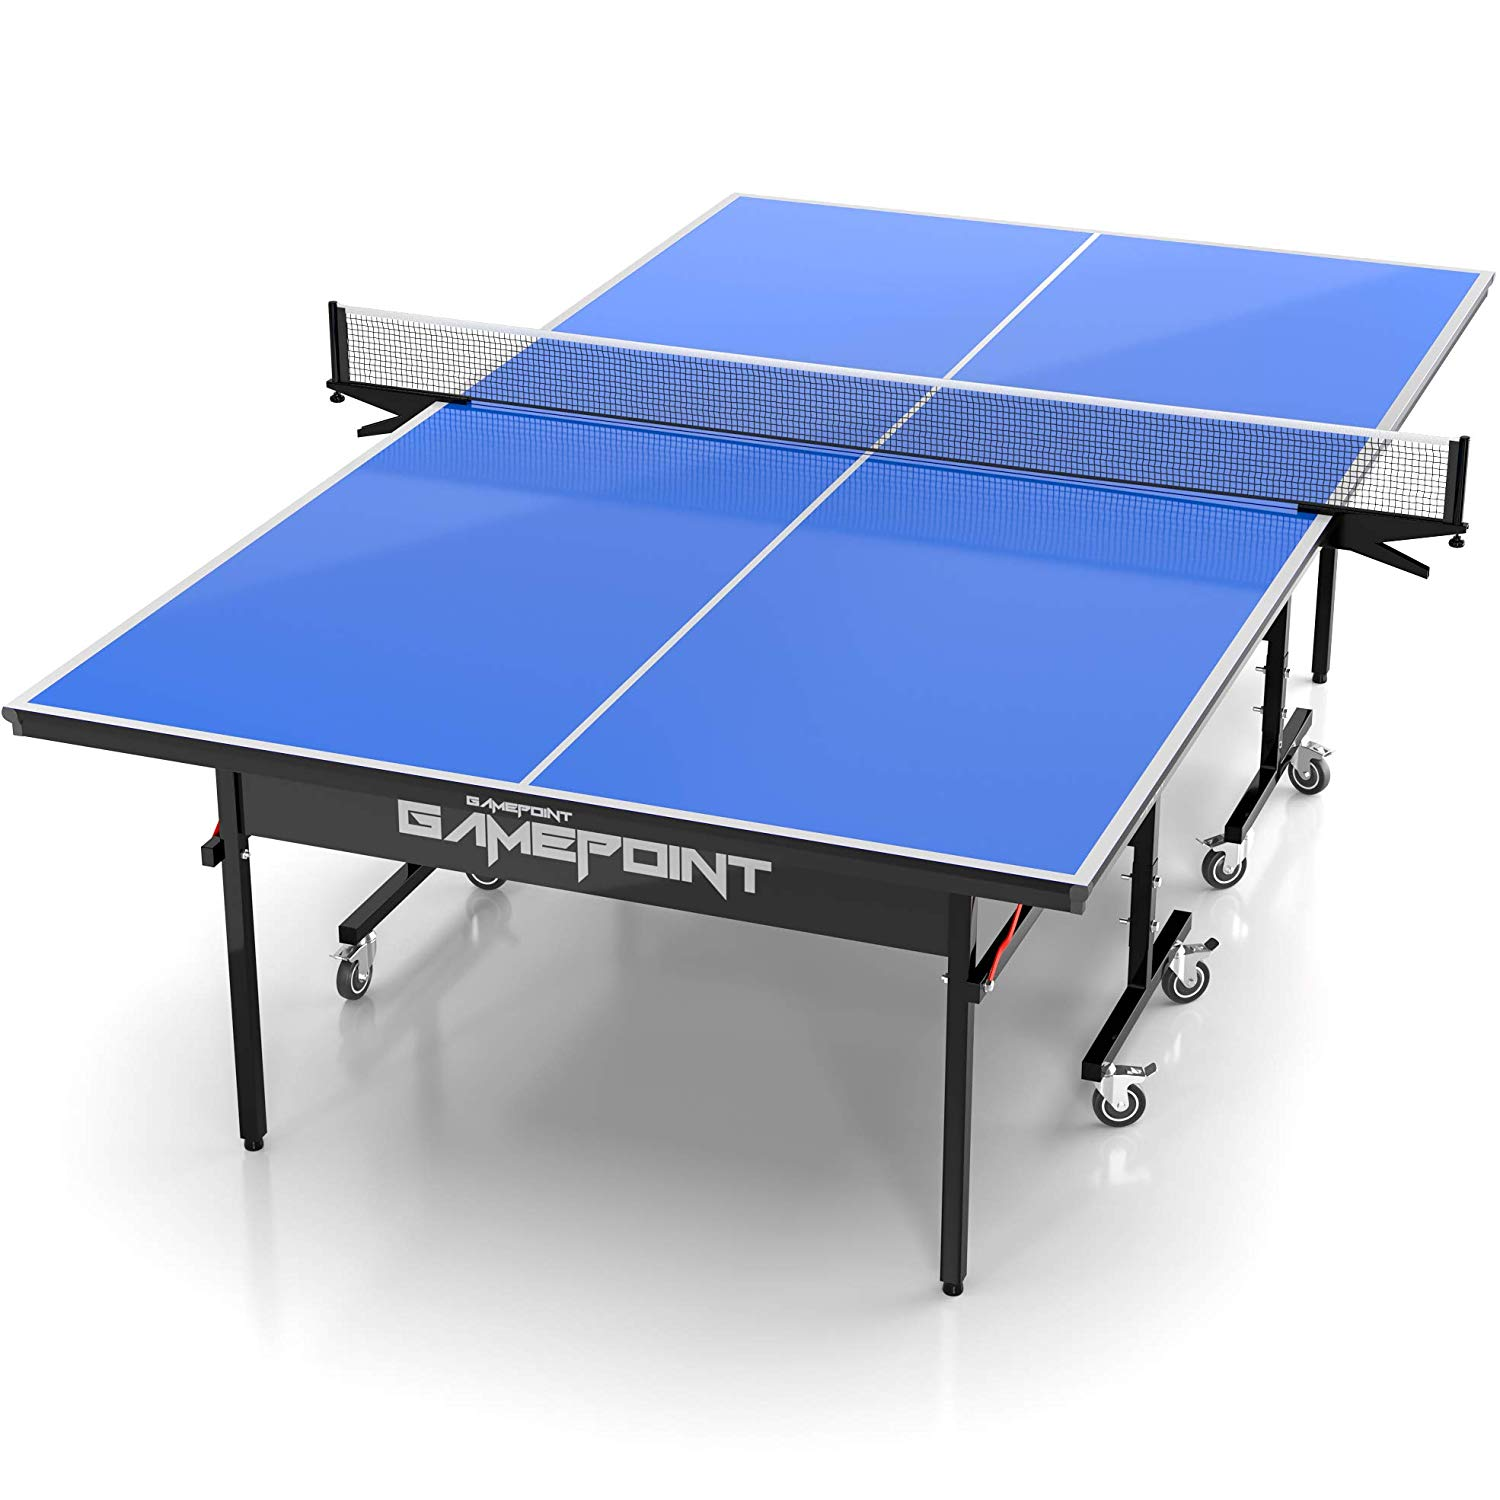 3. GamePoint Indoor Ping Pong Table